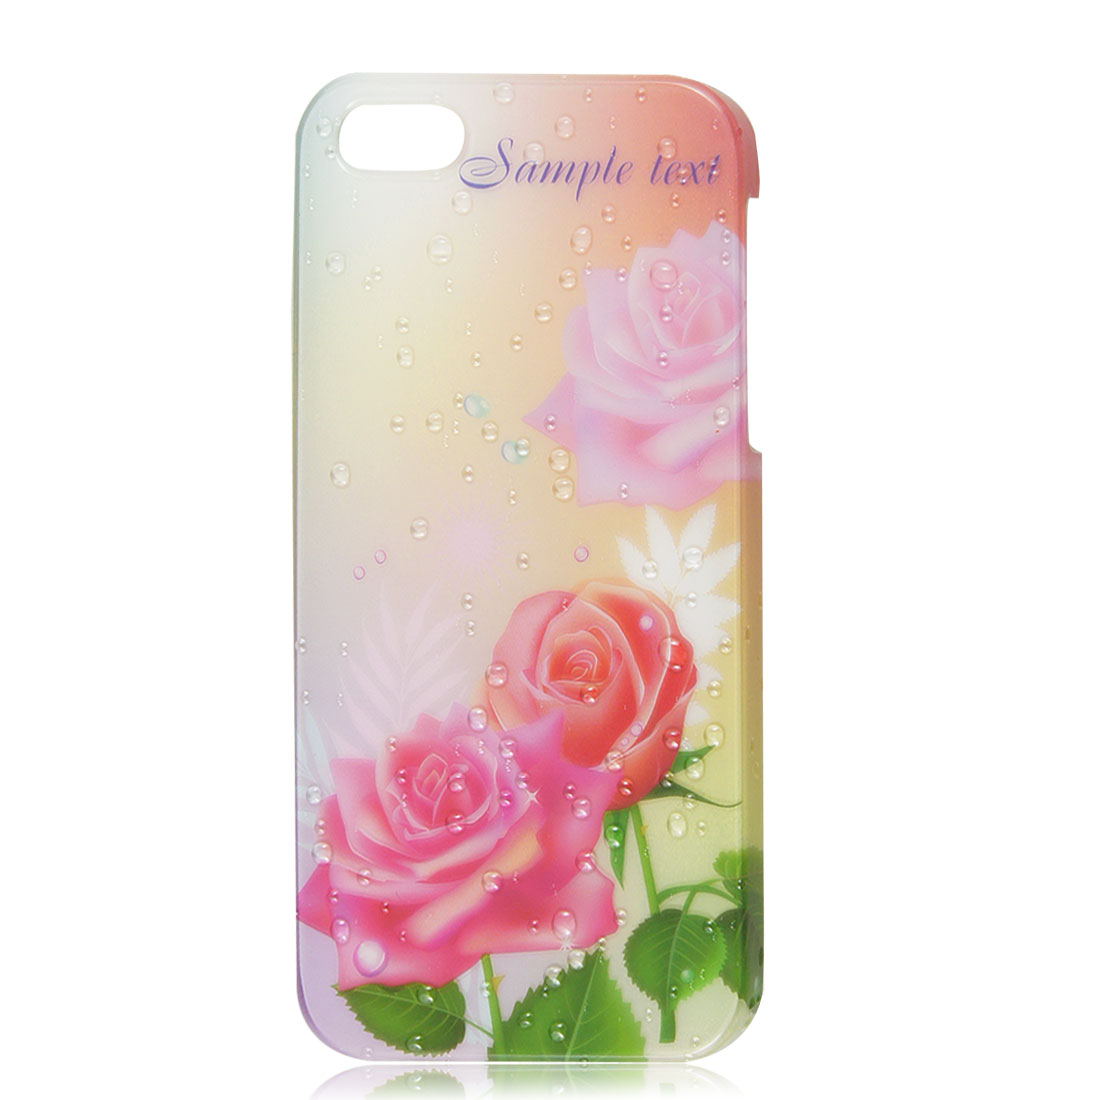 3D Water Drop & China Floral Rose Design Hard Back Case Cover for iPhone 5 5G